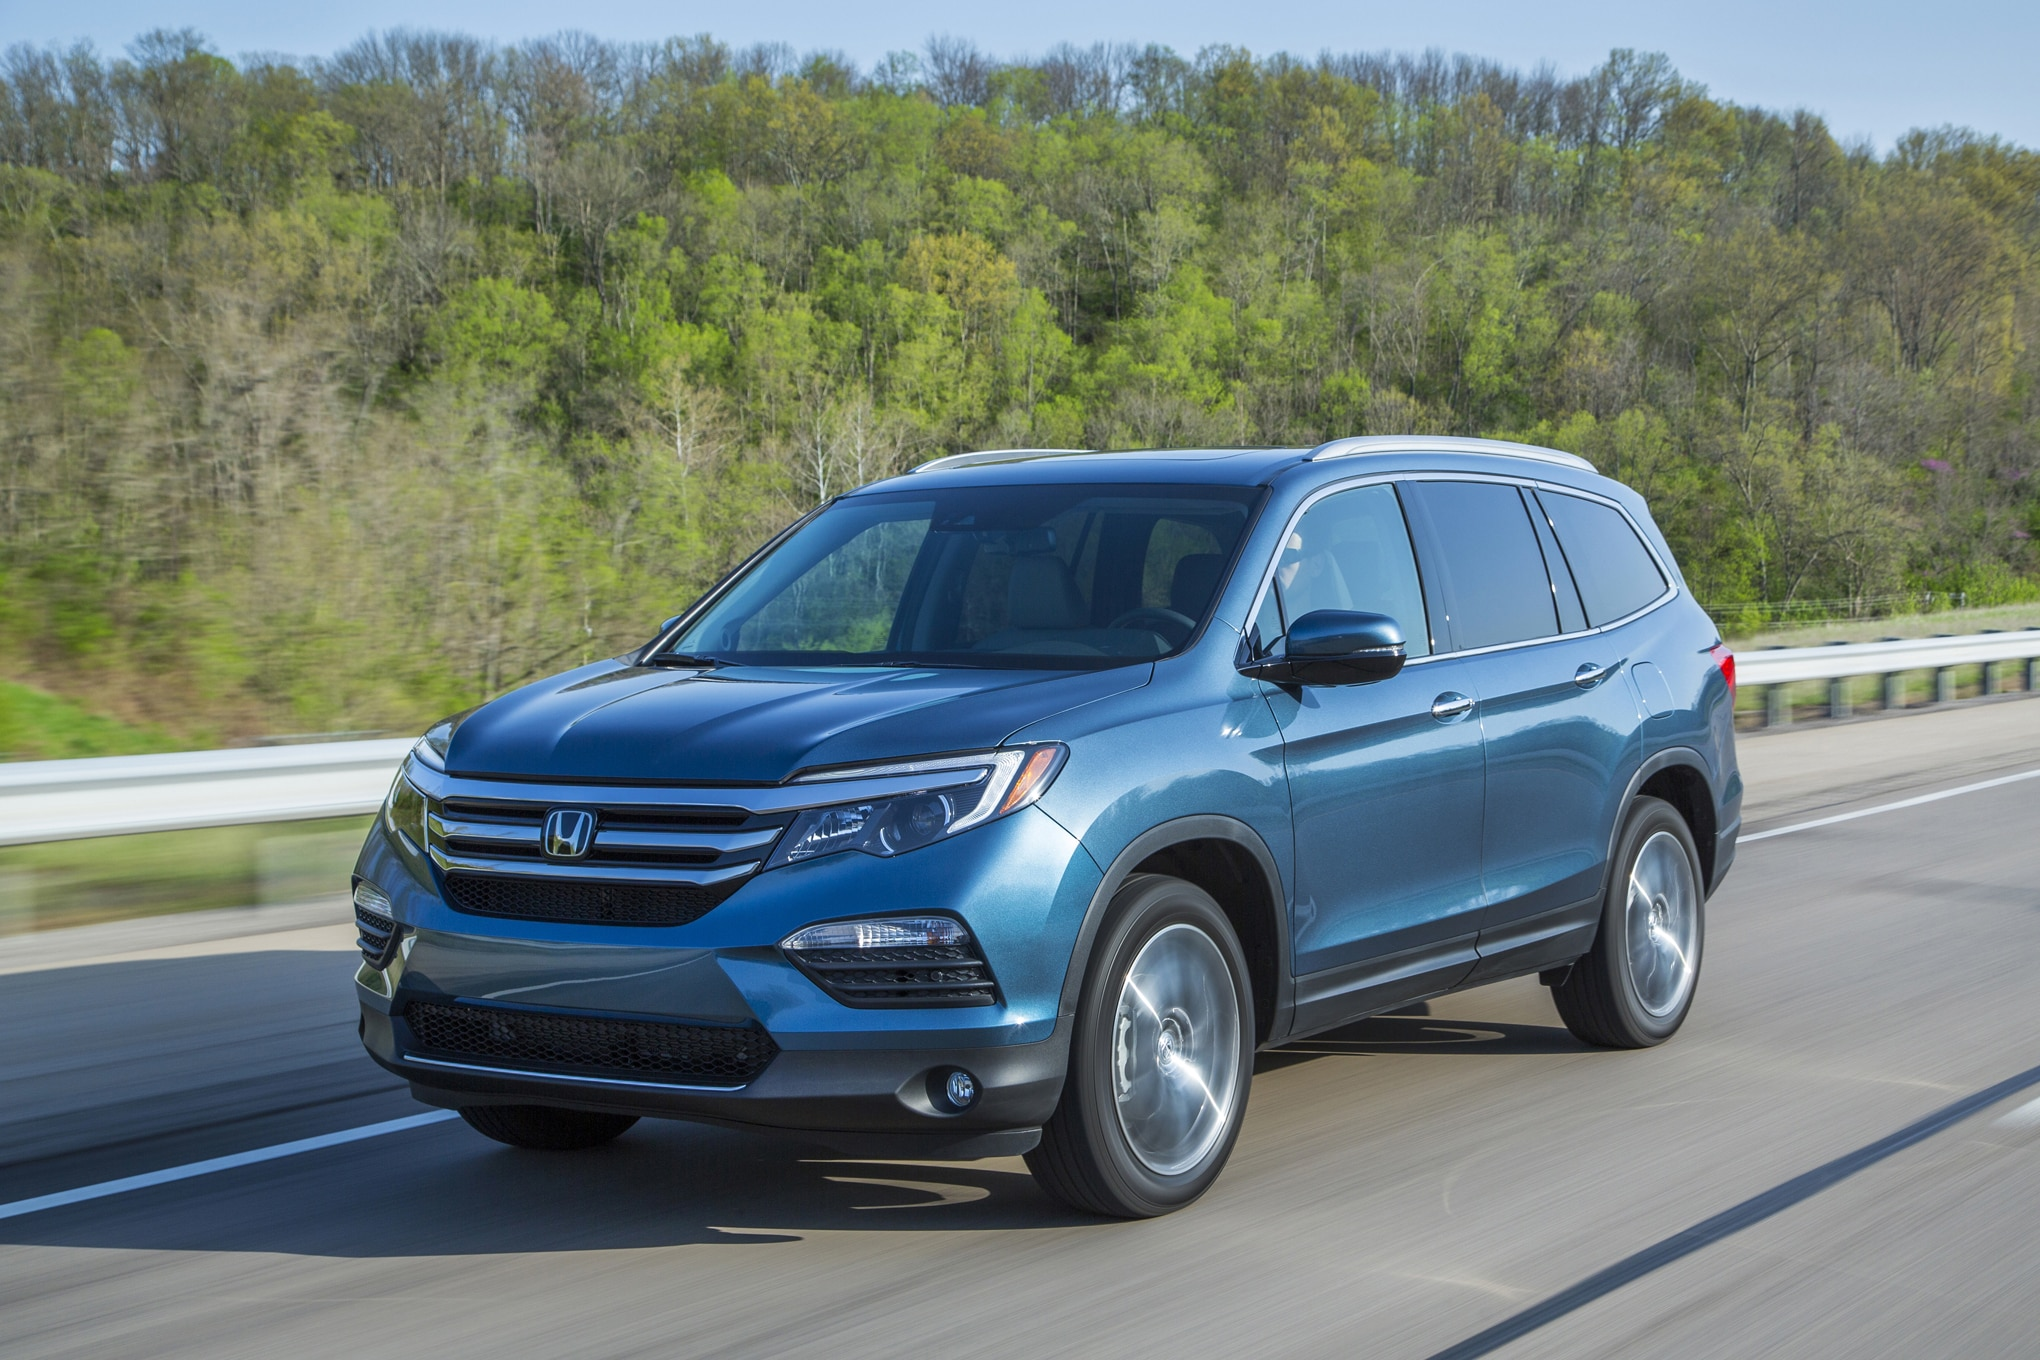 2016 honda pilot full pricing announced for Honda pilot images